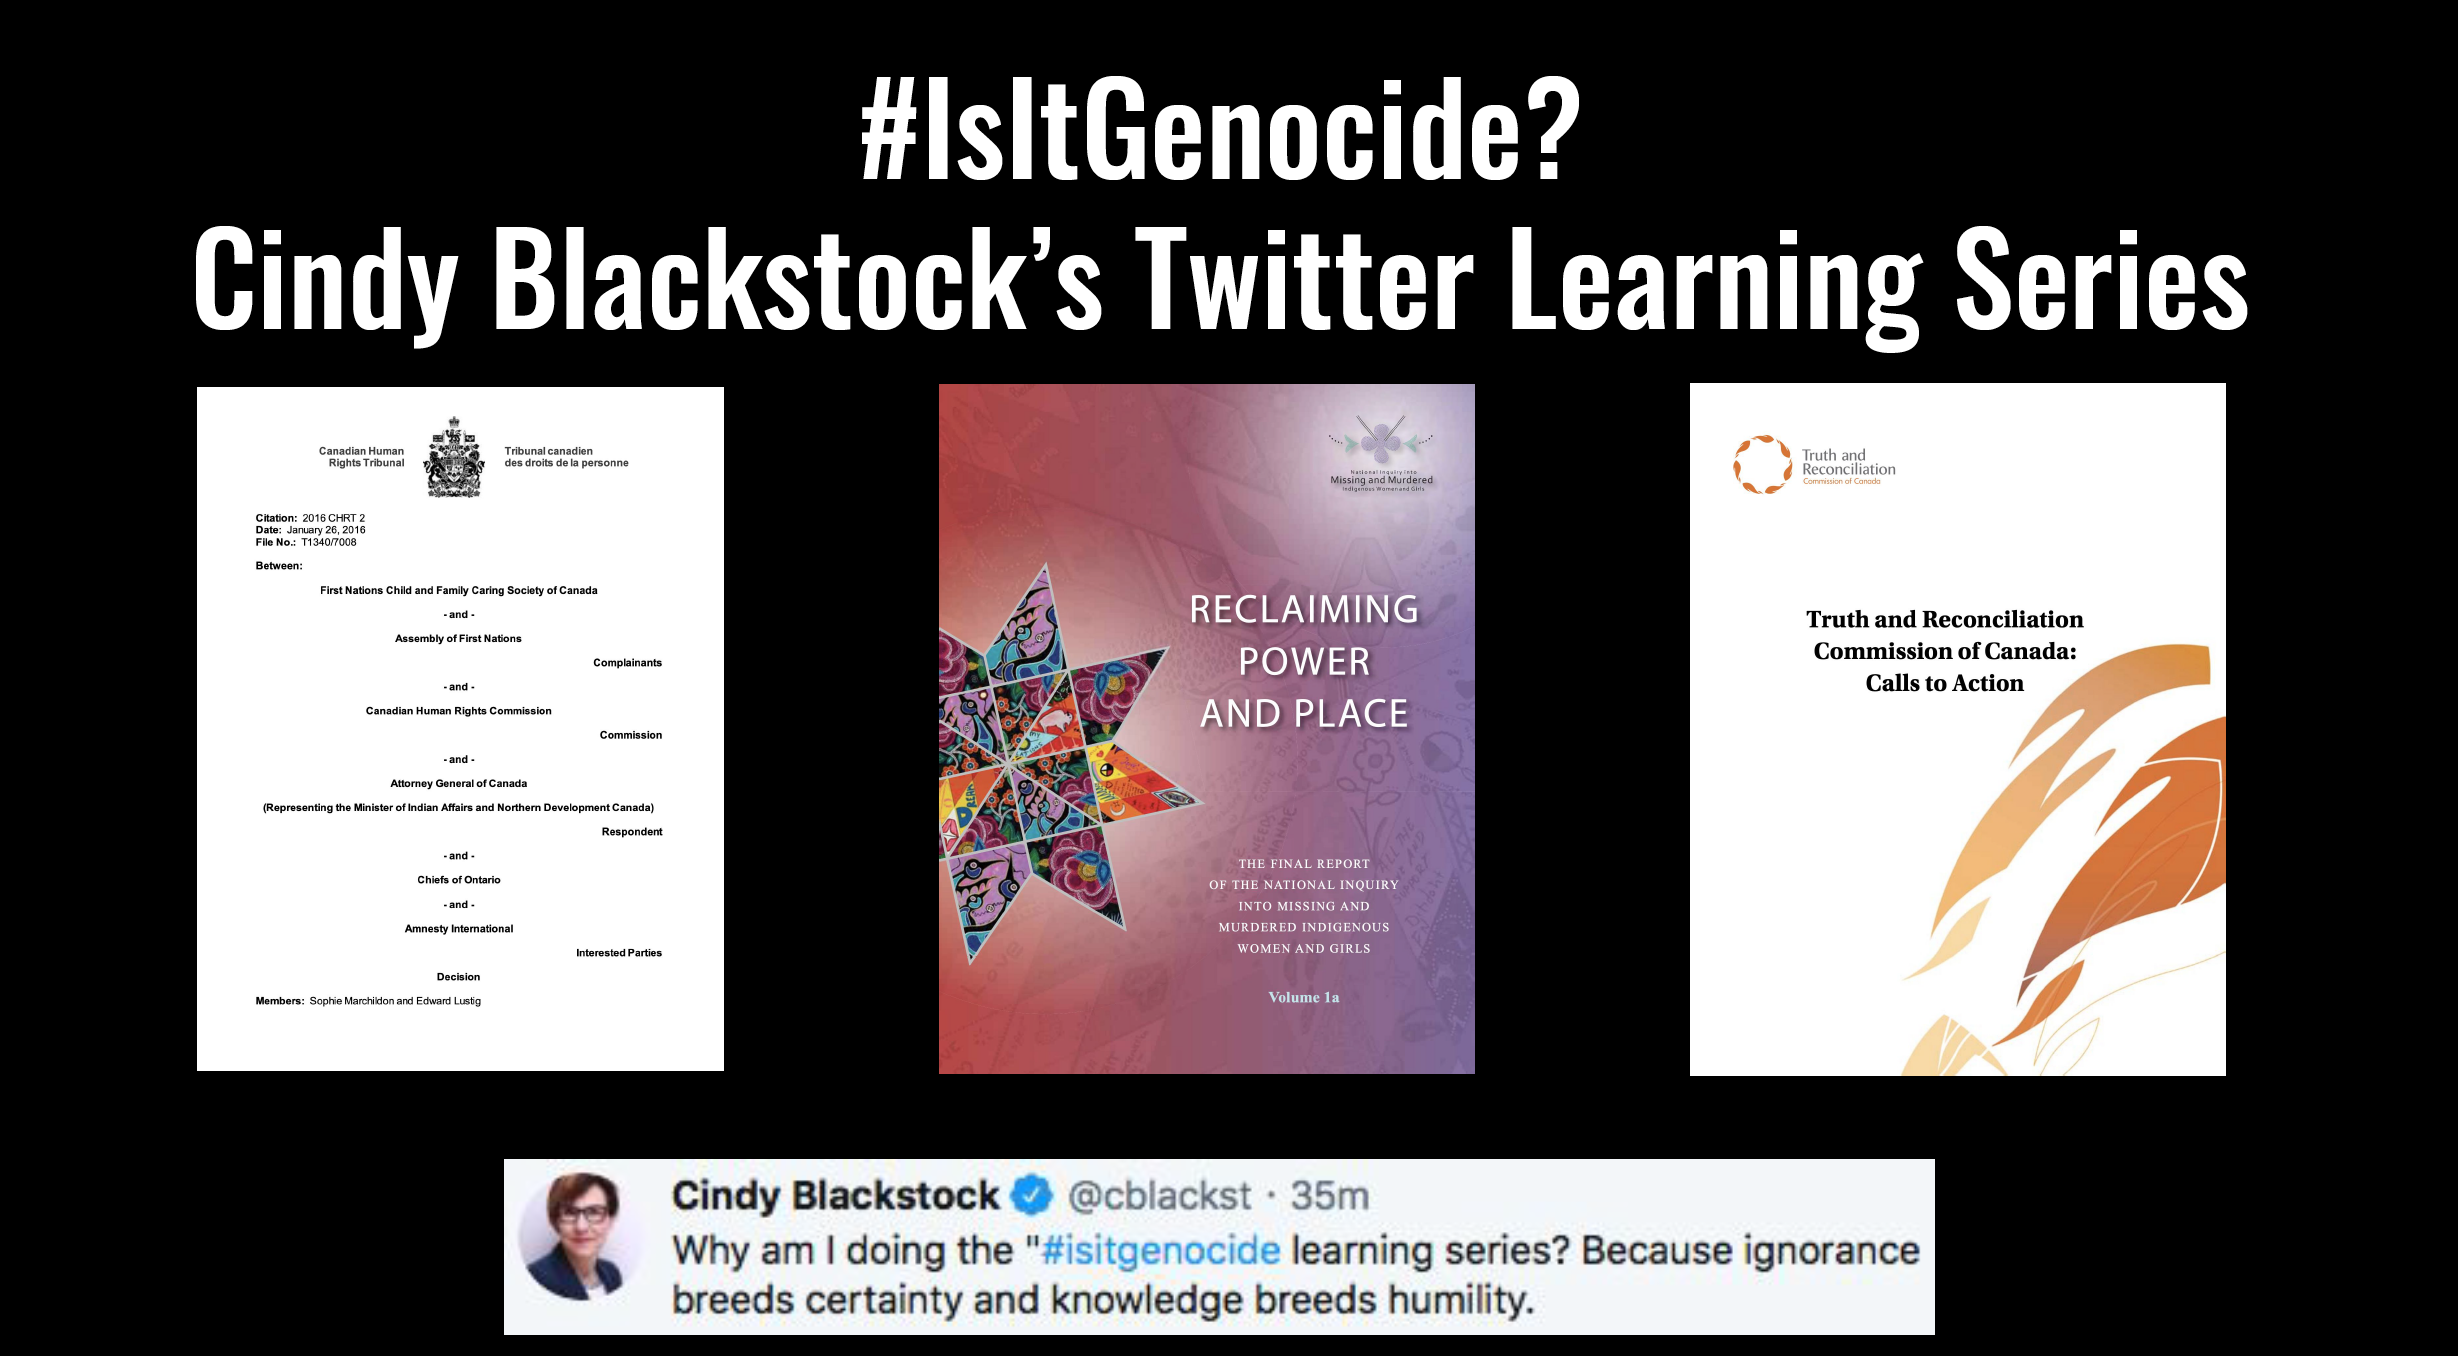 #IsItGenocide?